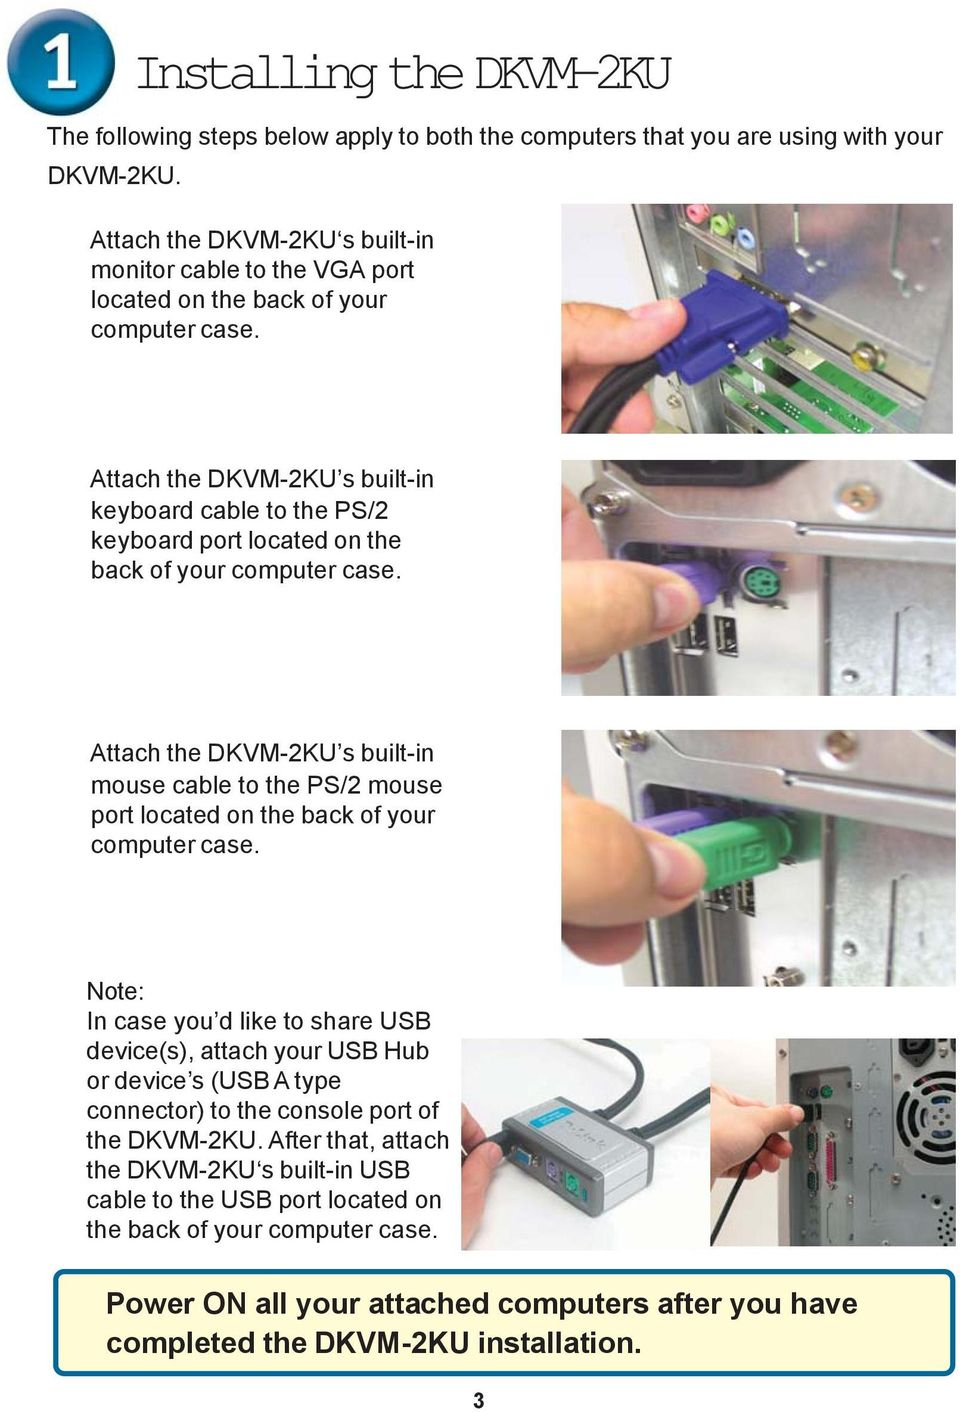 Attach the DKVM-2KU s built-in keyboard cable to the PS/2 keyboard port located on the back of your computer case.